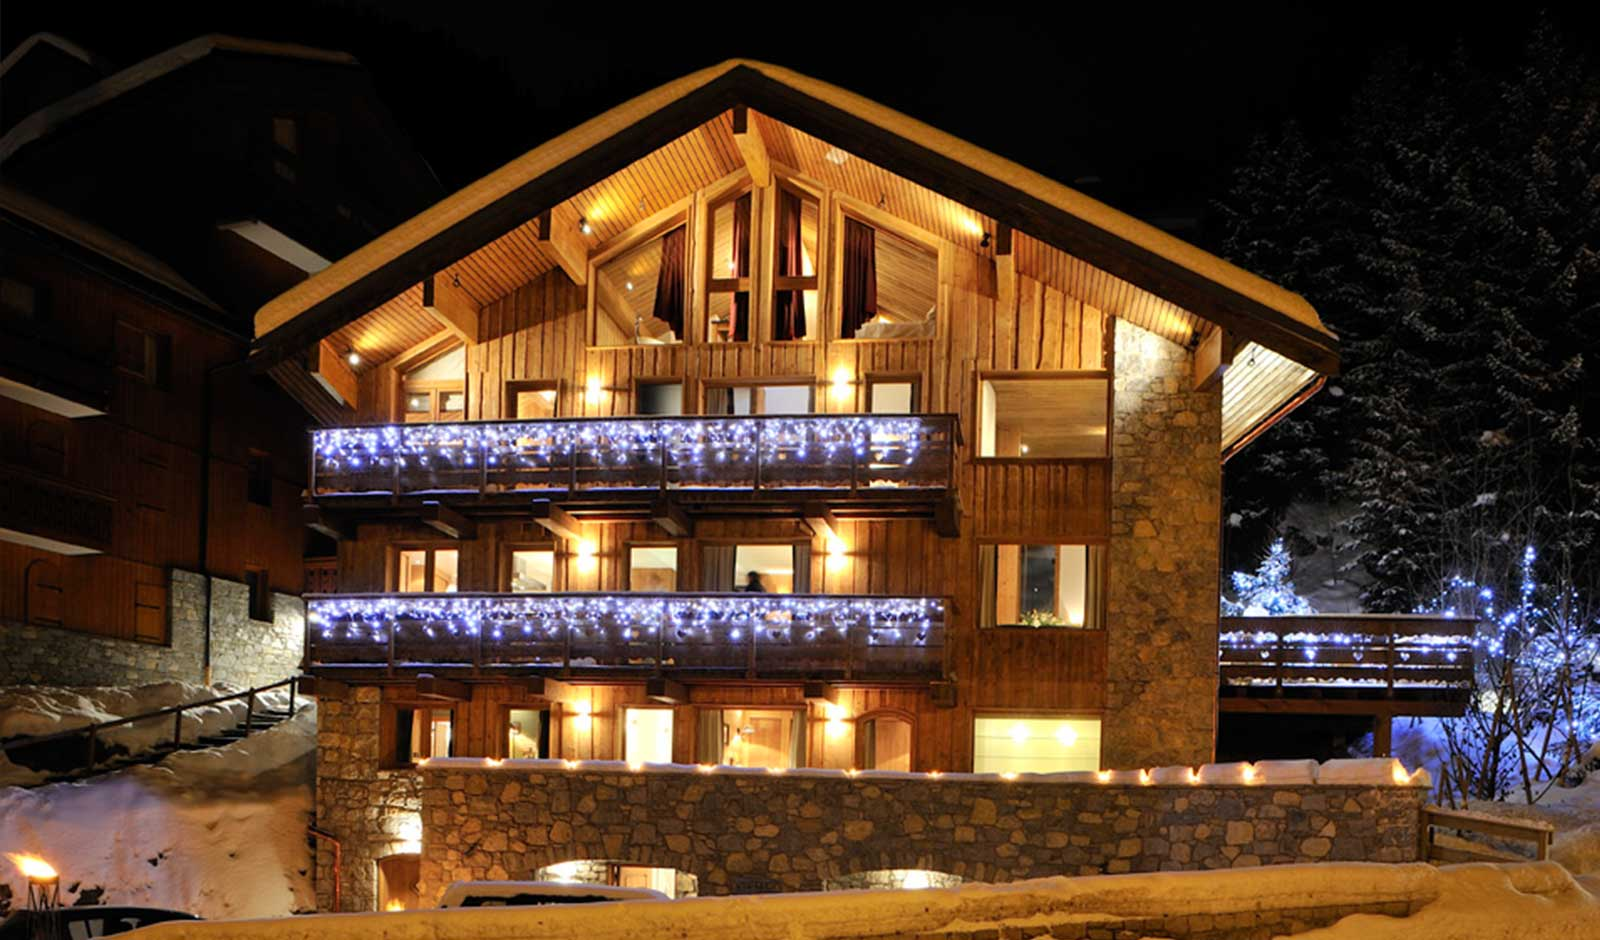 chalet-zybeline-10-atelier-crea-and-co-architecte-design-project-manager-meribel-savoie